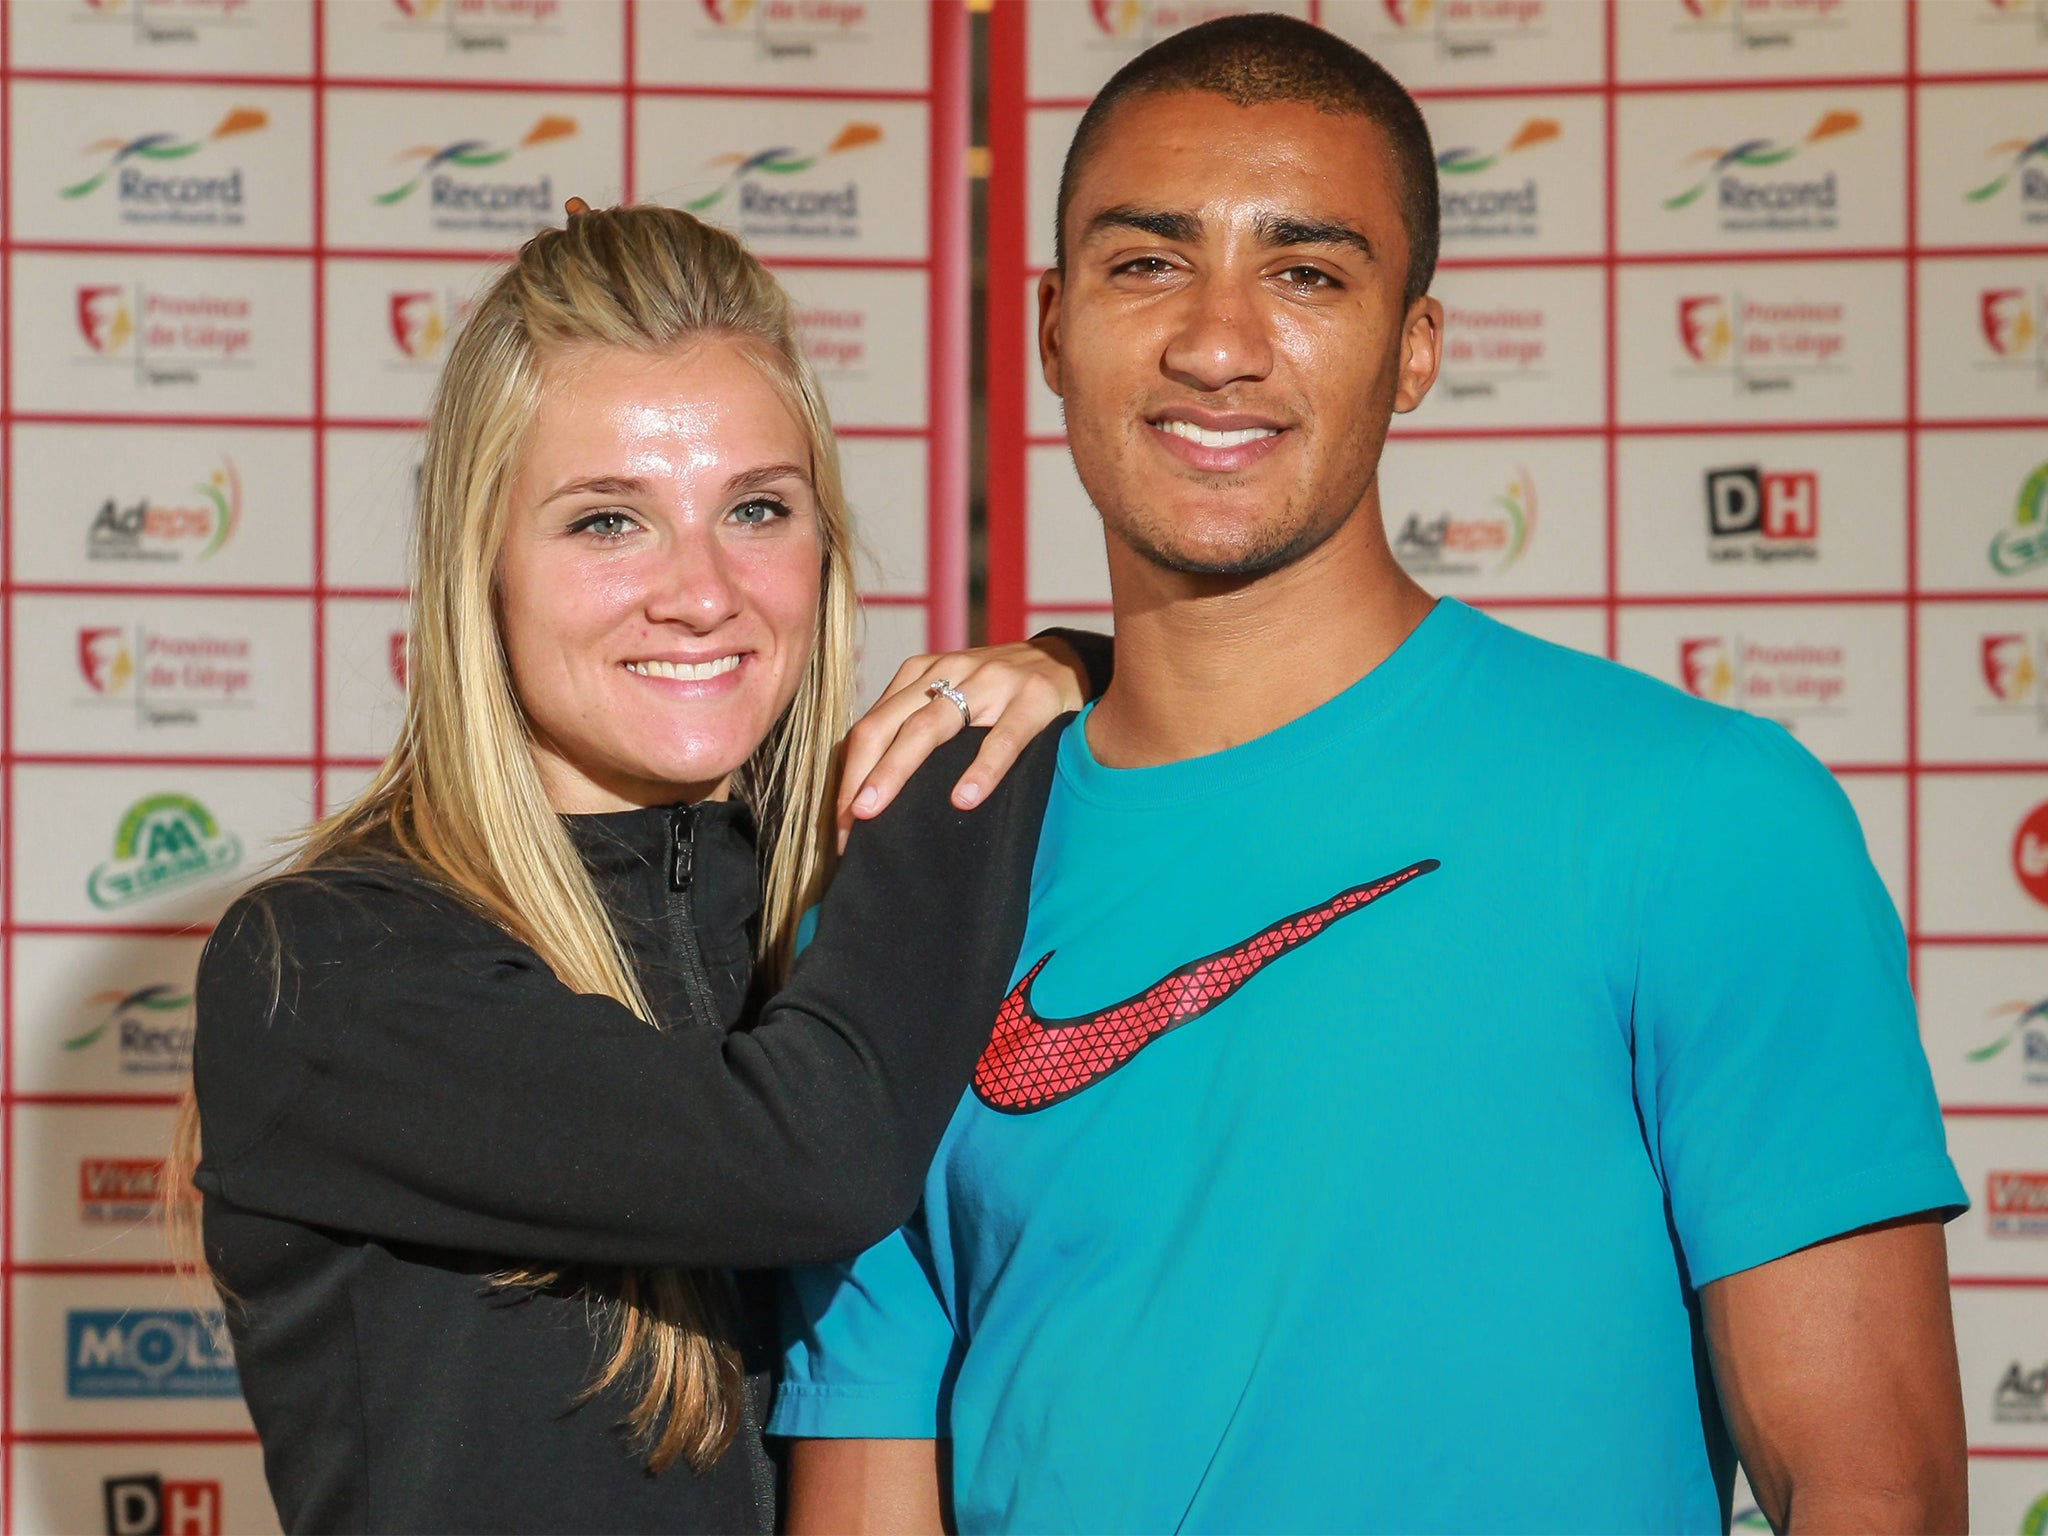 brianne theisen eaton wedding. ashton eaton: the man and his marriage have got ultimate winning formula | independent brianne theisen eaton wedding